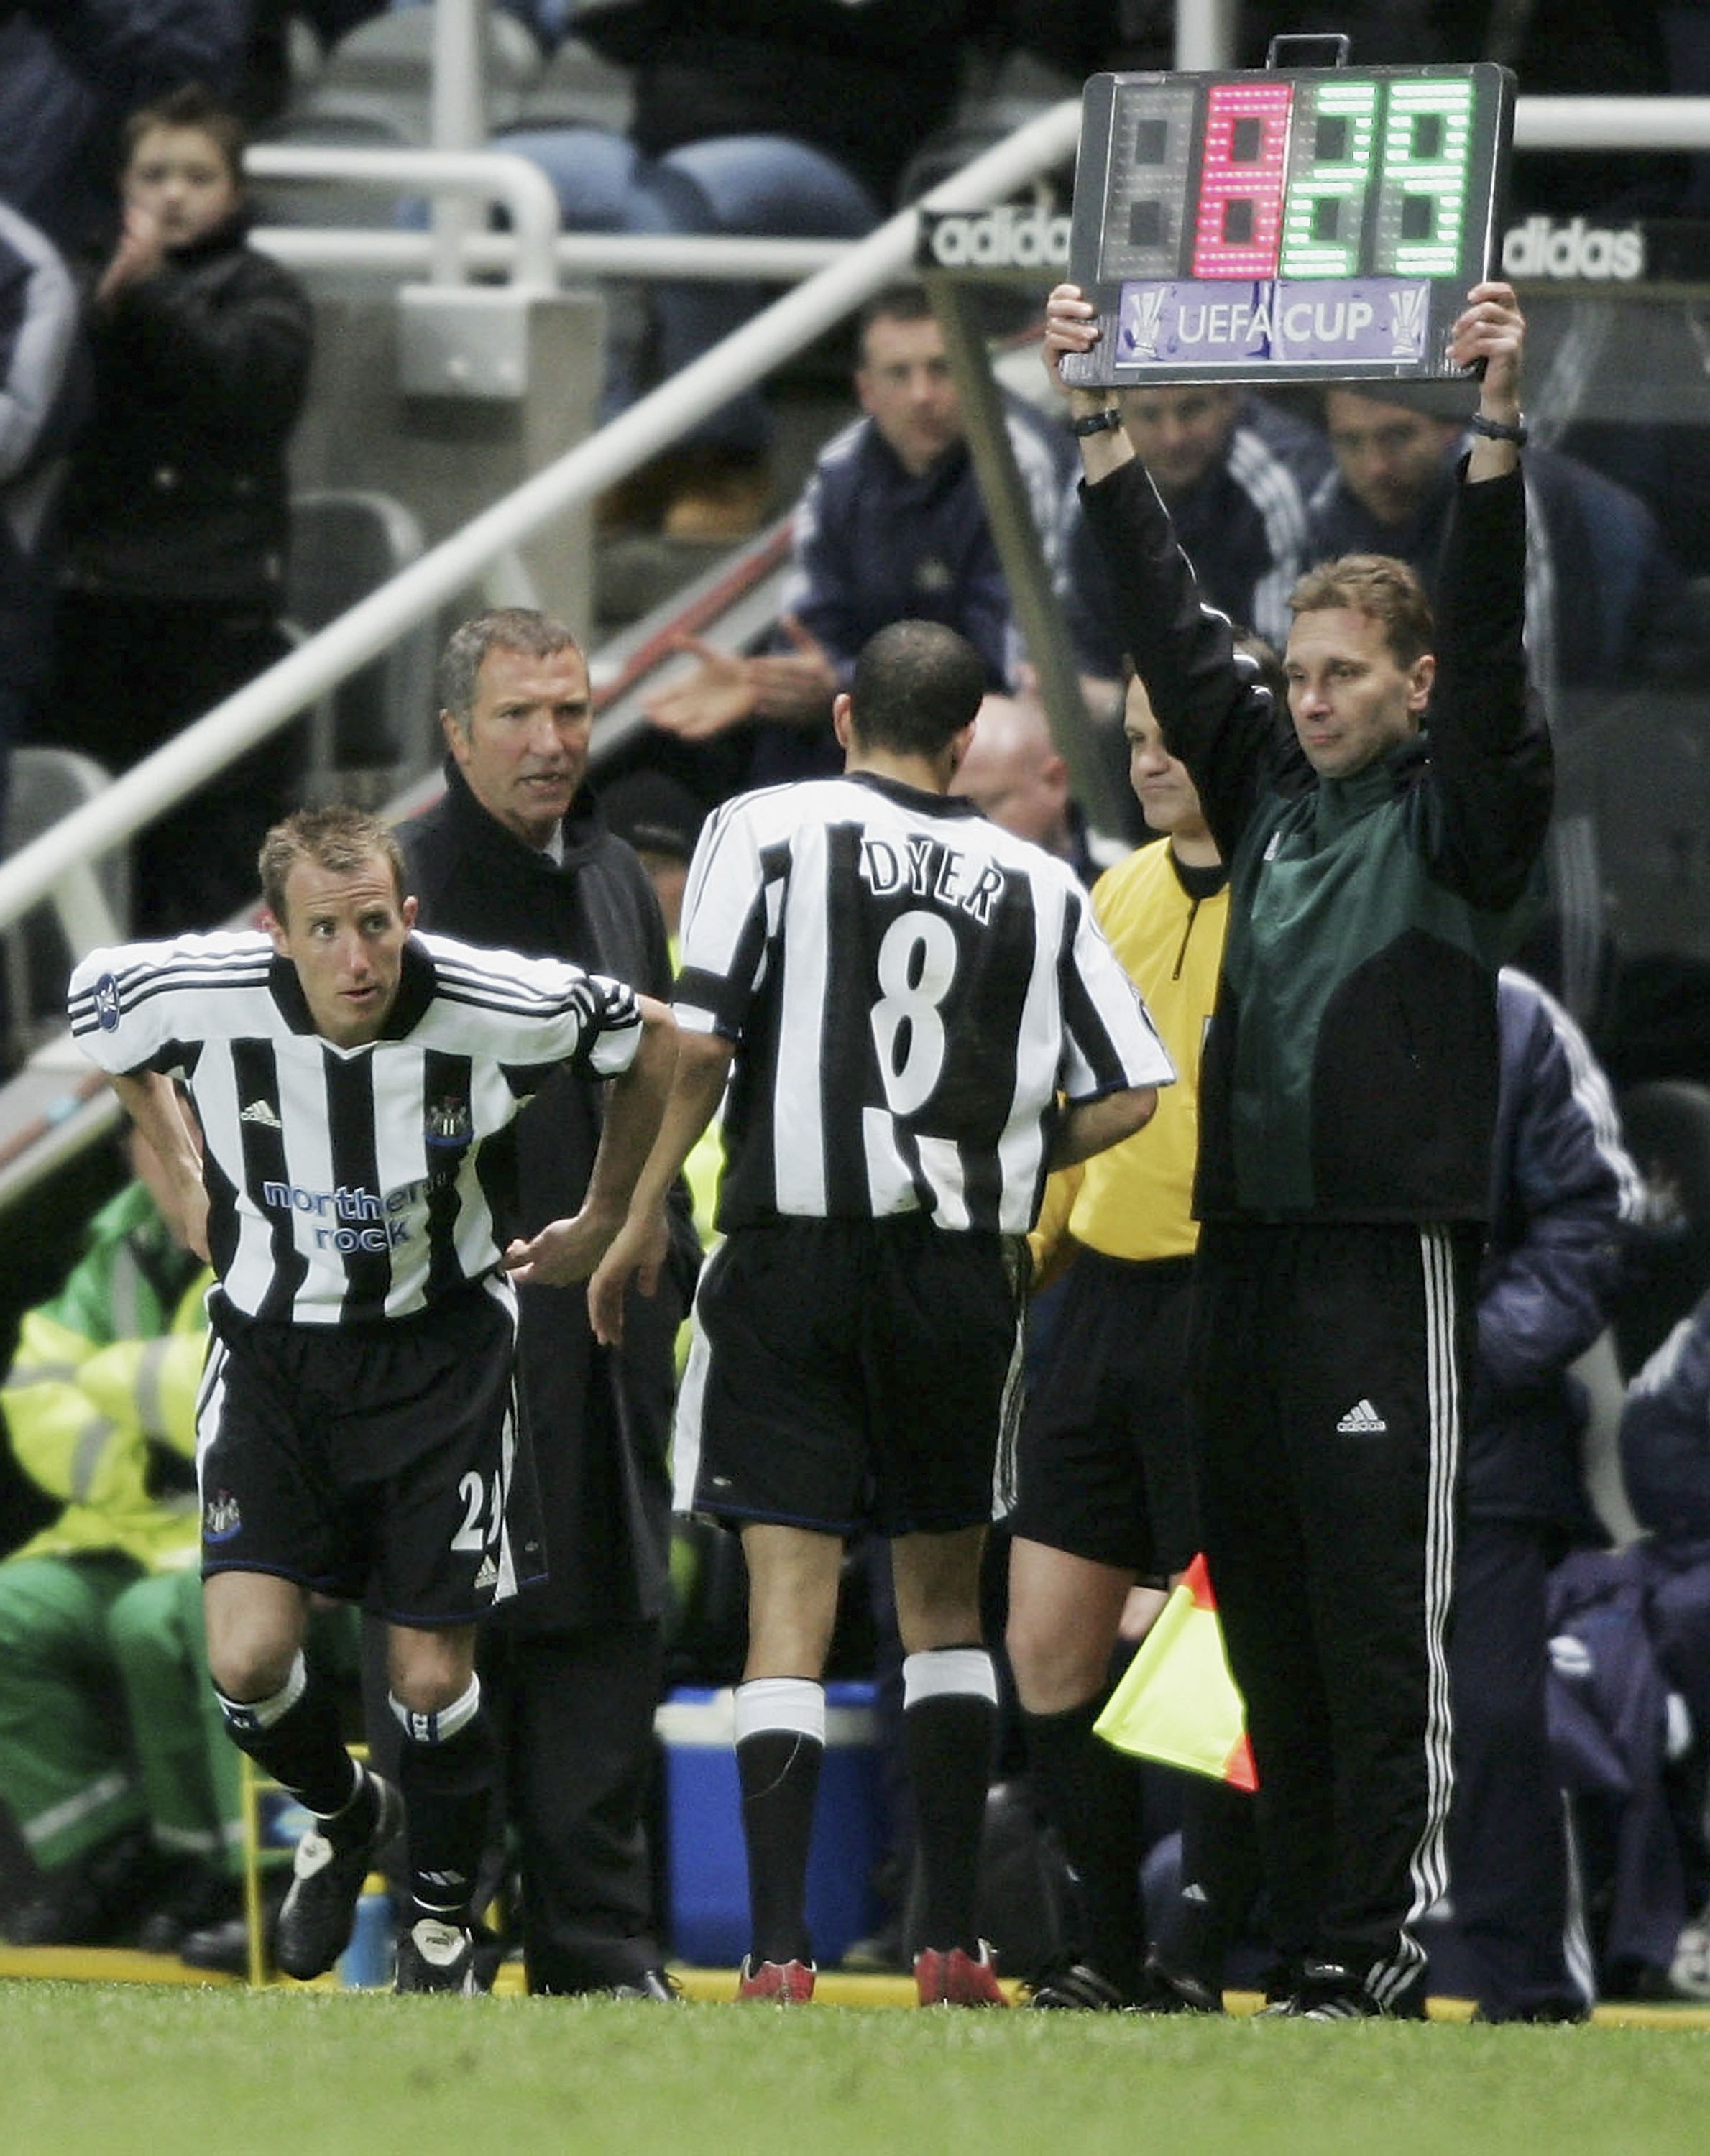 NEWCASTLE, ENGLAND - APRIL 7:  Kieron Dyer is replaced on the field by Lee Bowyer as manager Graeme Souness looks on  during the UEFA Cup Quarter Final first leg between Newcastle United and Sporting Lisbon at St James Park on April 7, 2005 in Newcastle,